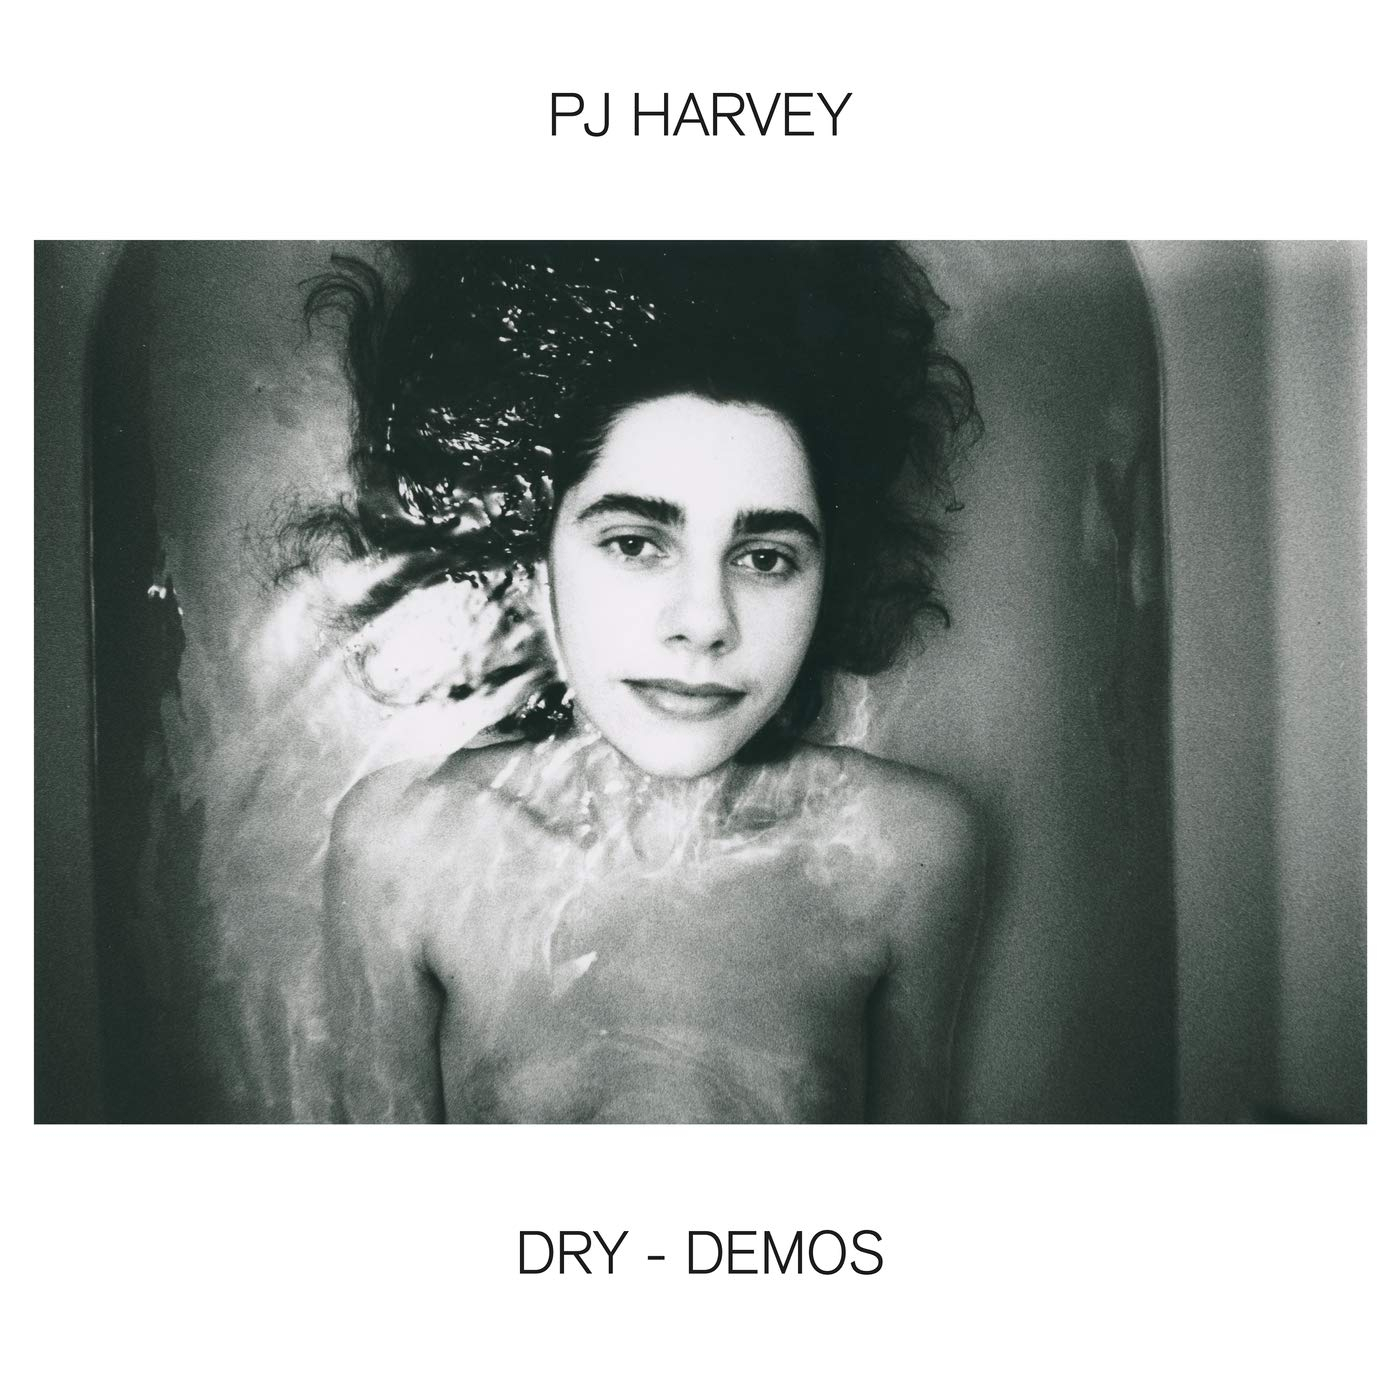 "PJ HARVEY ""Dry demos"" VINYL"